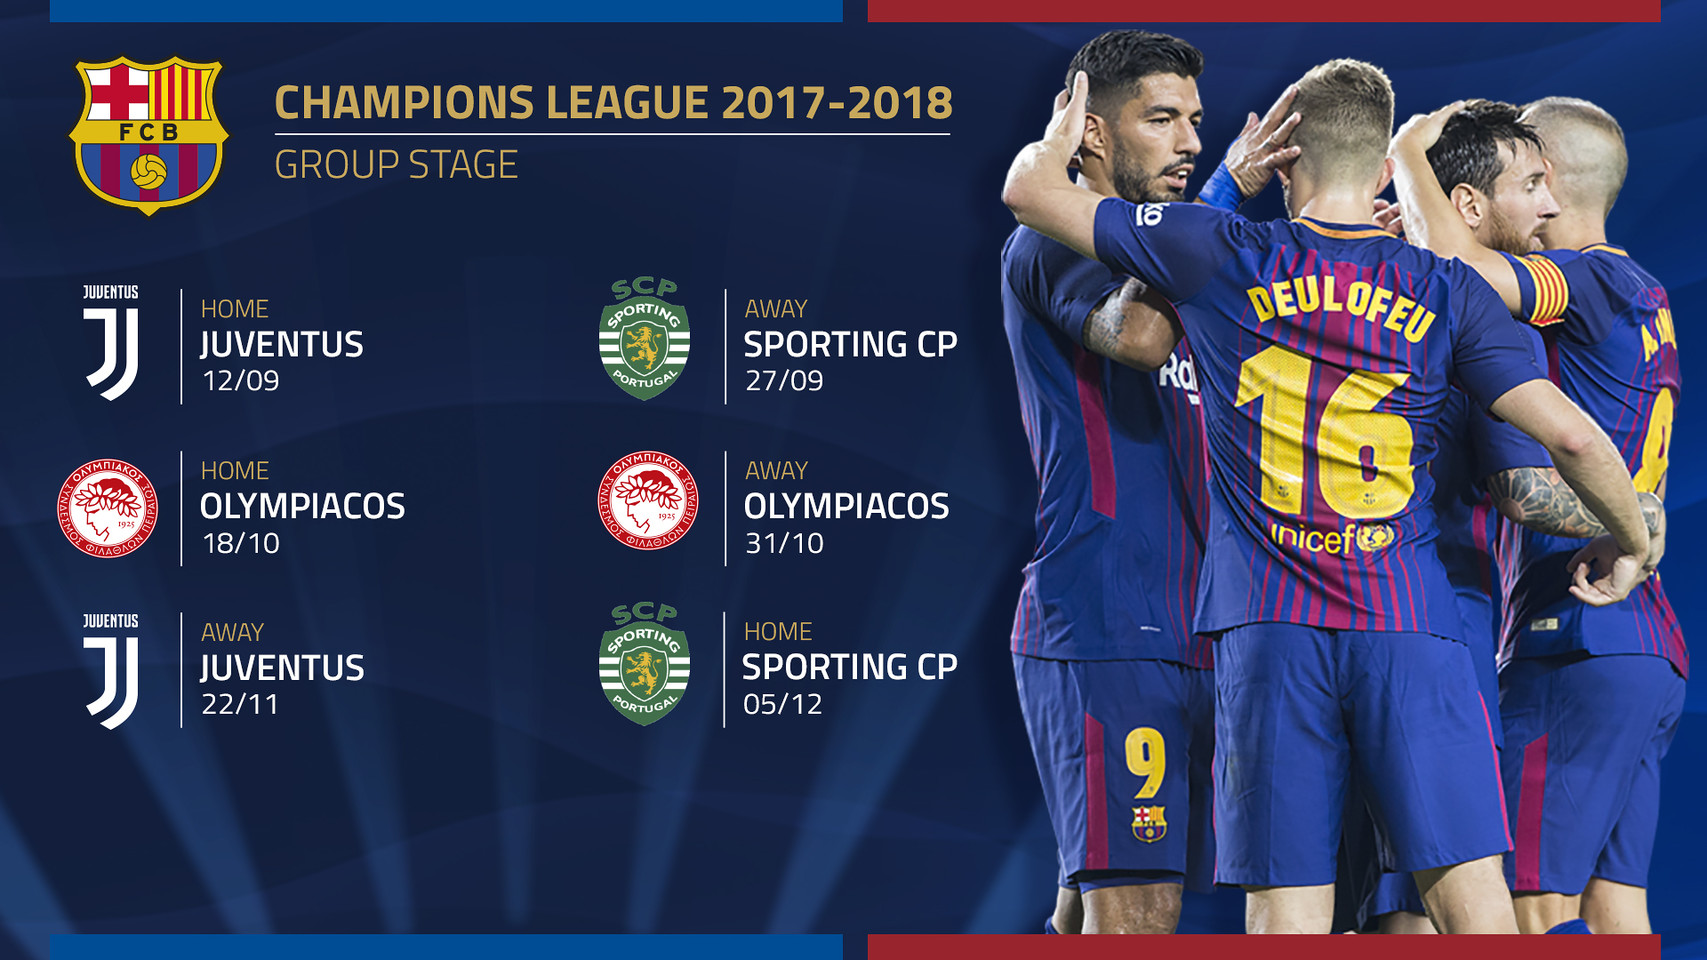 Tickets on sale for Champions League group stage matches ...